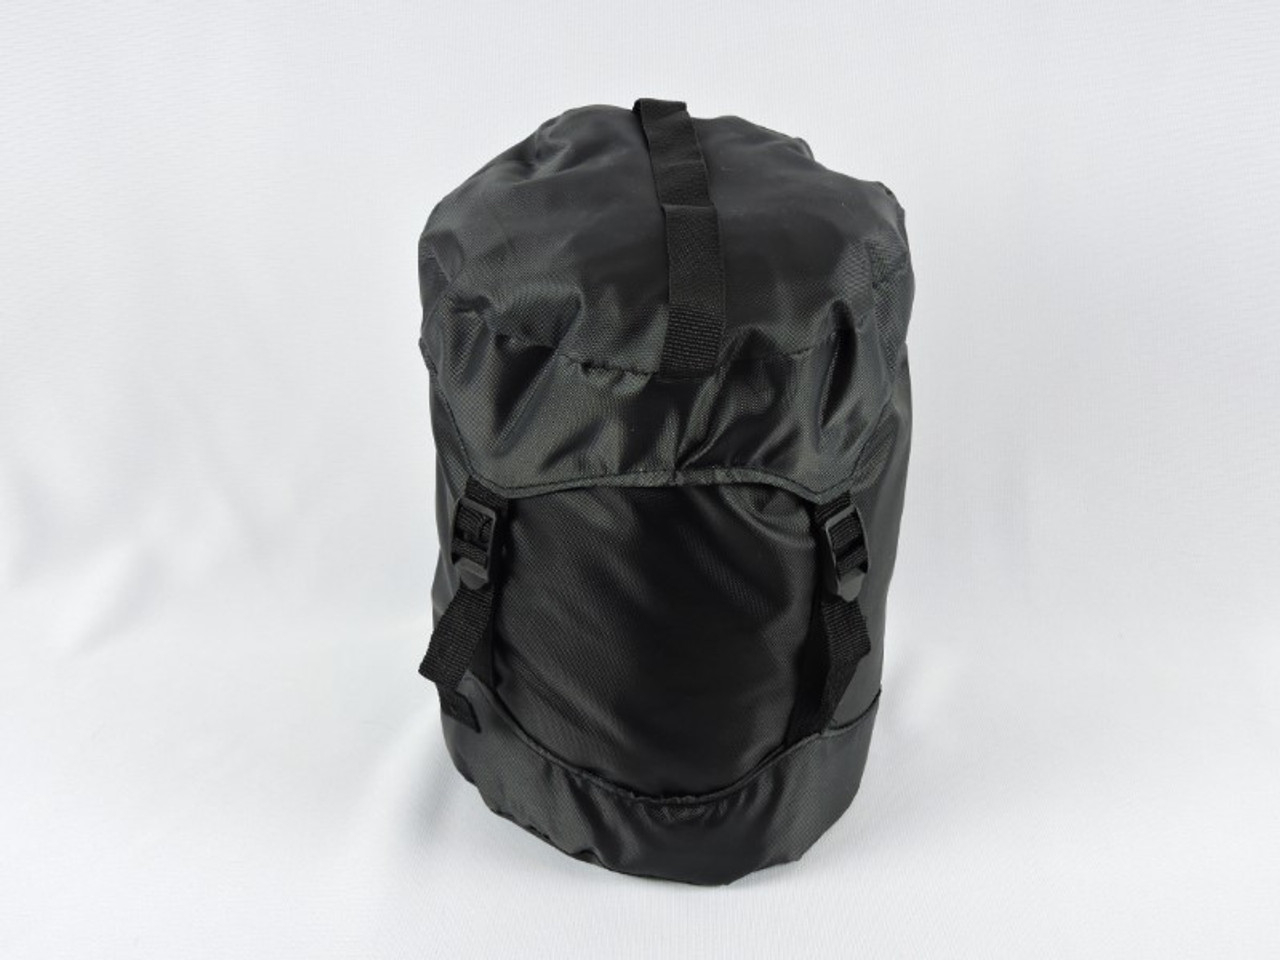 Handy and durable compression bag for compact storage.